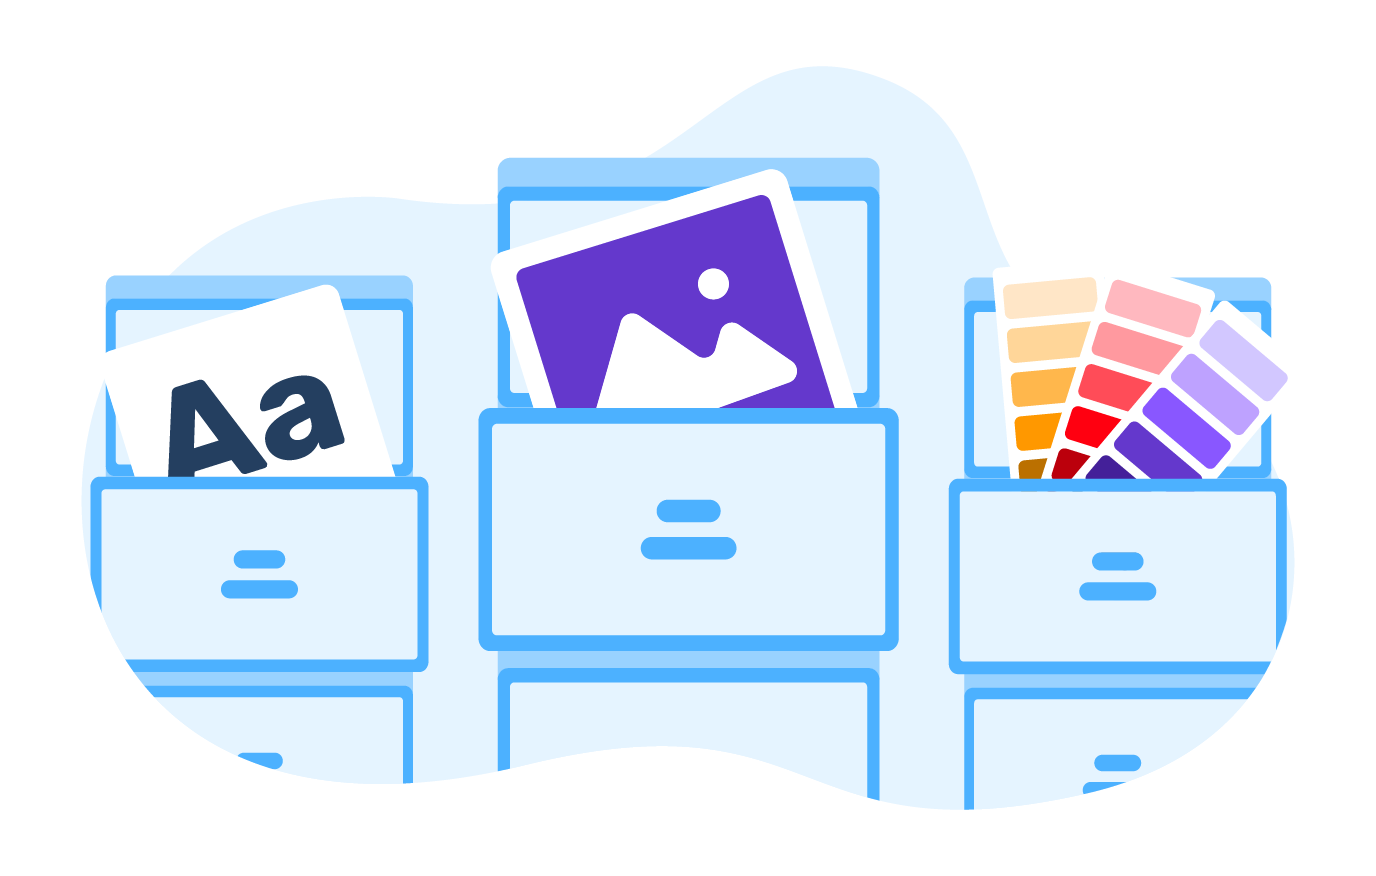 Admin panel for managing web-to-print projects